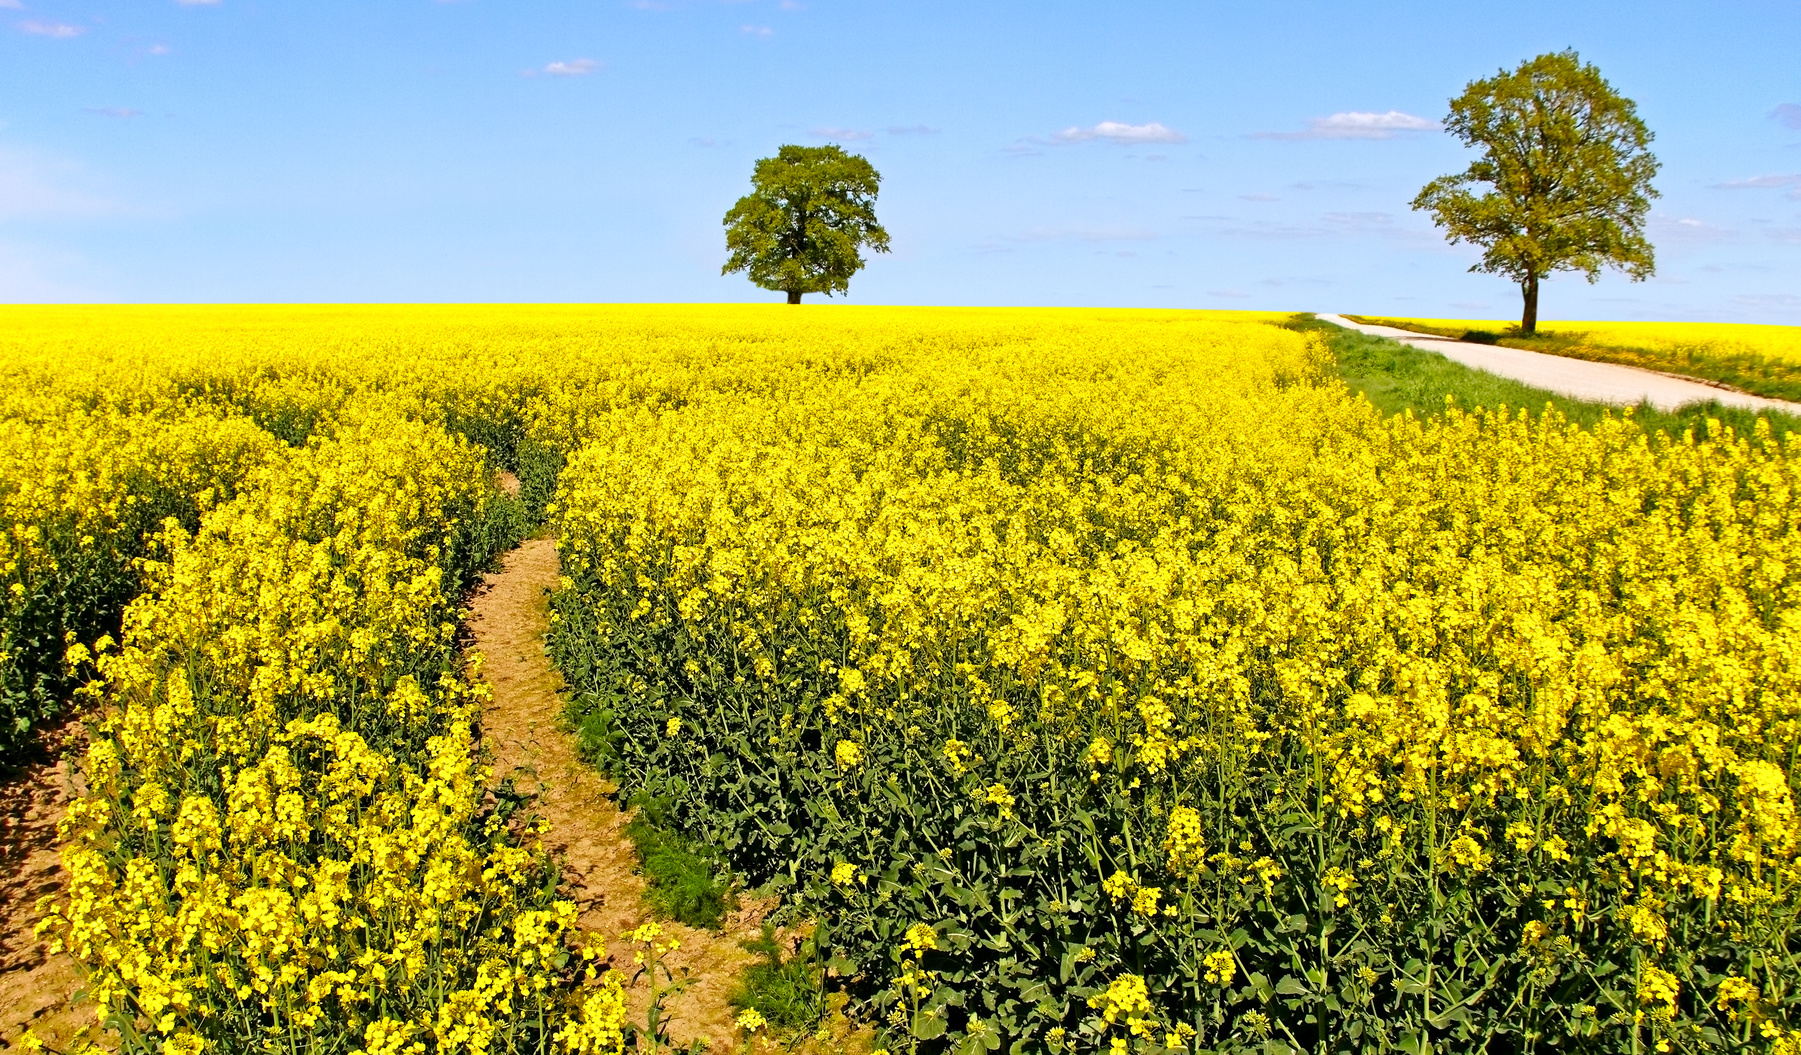 Rapeseed field in a sunny day.